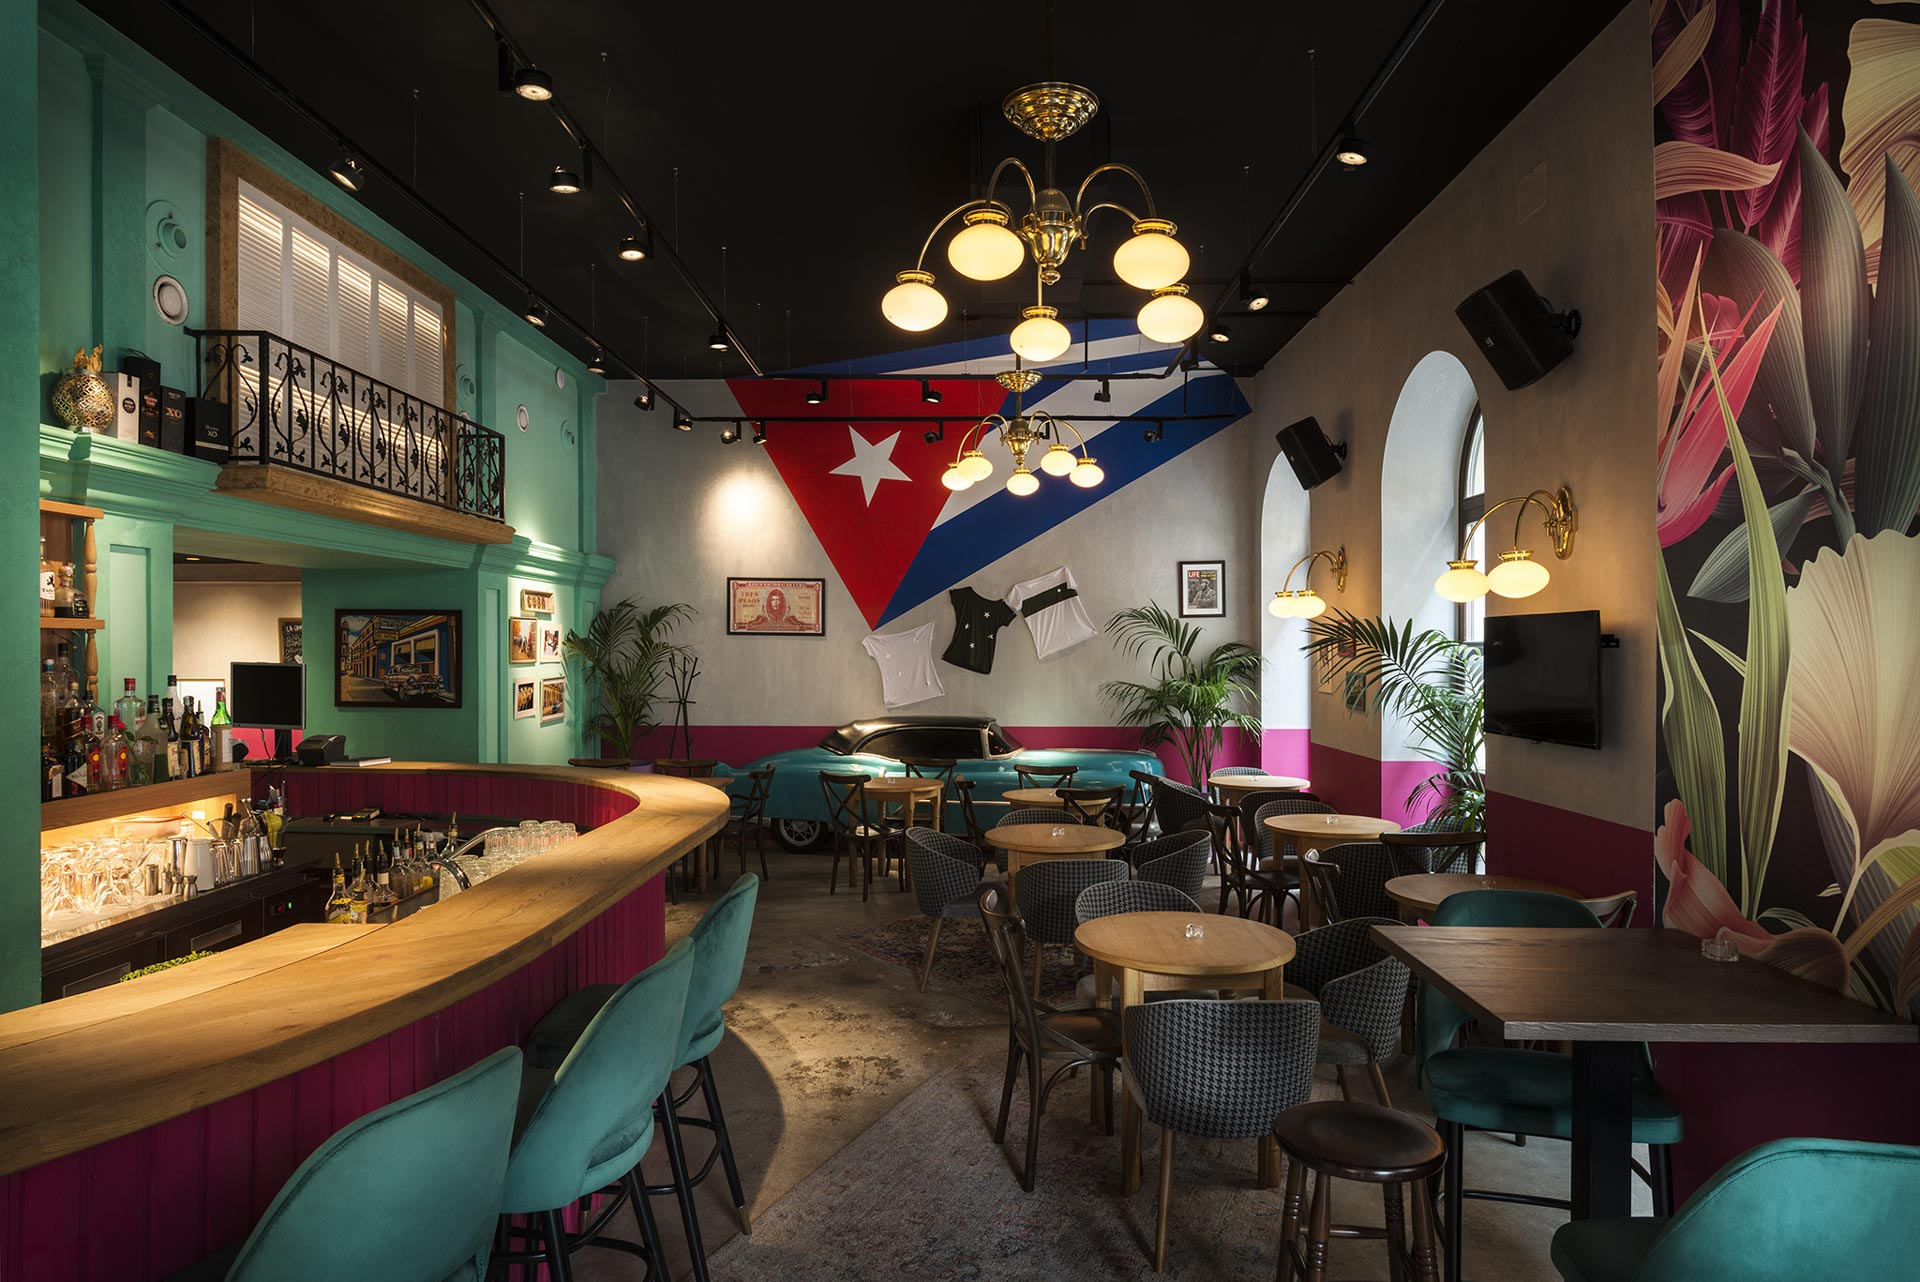 If You Love Cuba, This Cuba Inspired Cabaret is The Place To Go 6